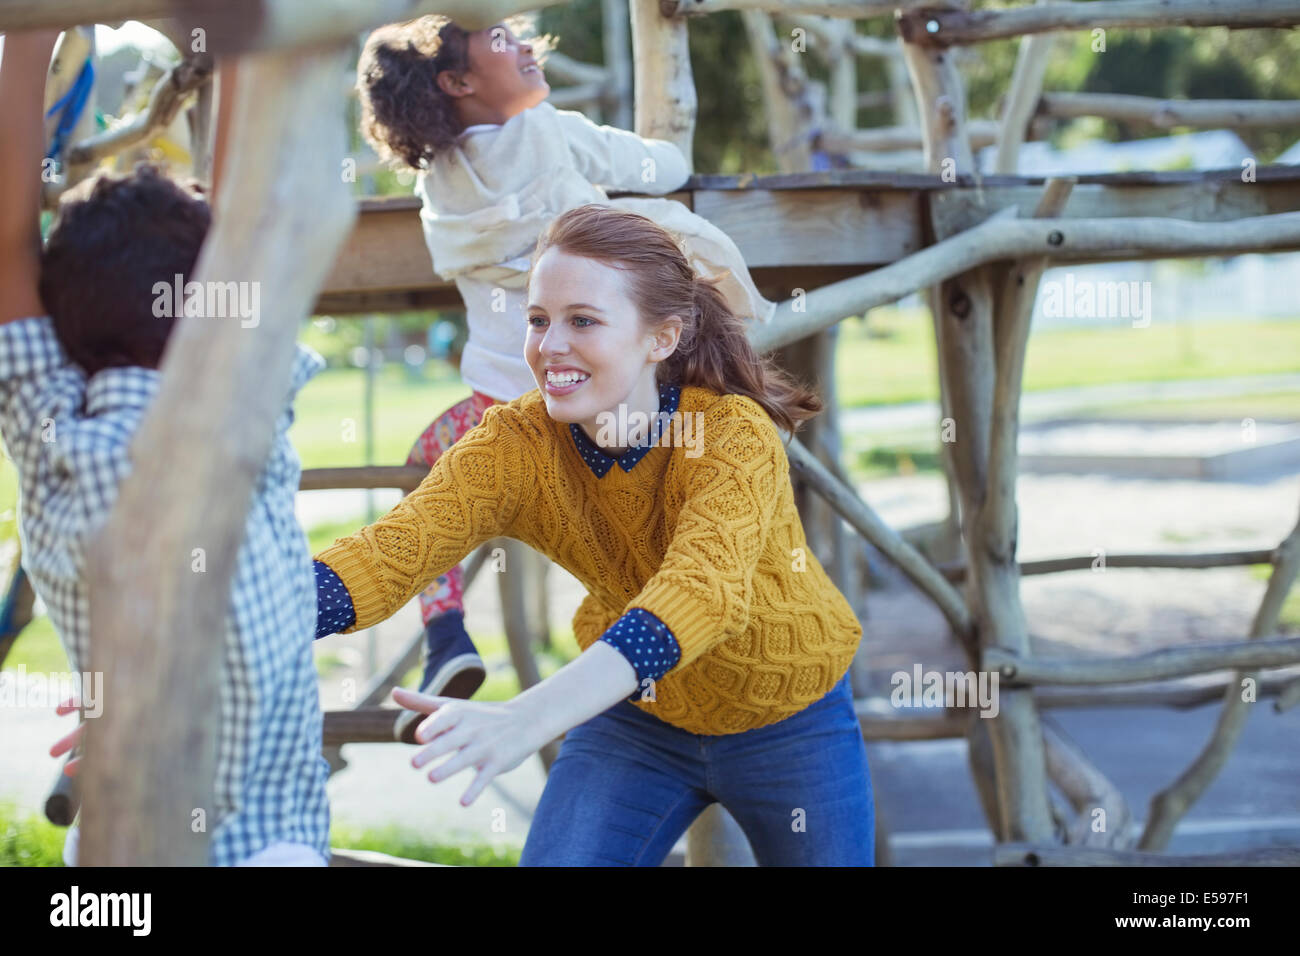 Student and teacher playing outdoors - Stock Image